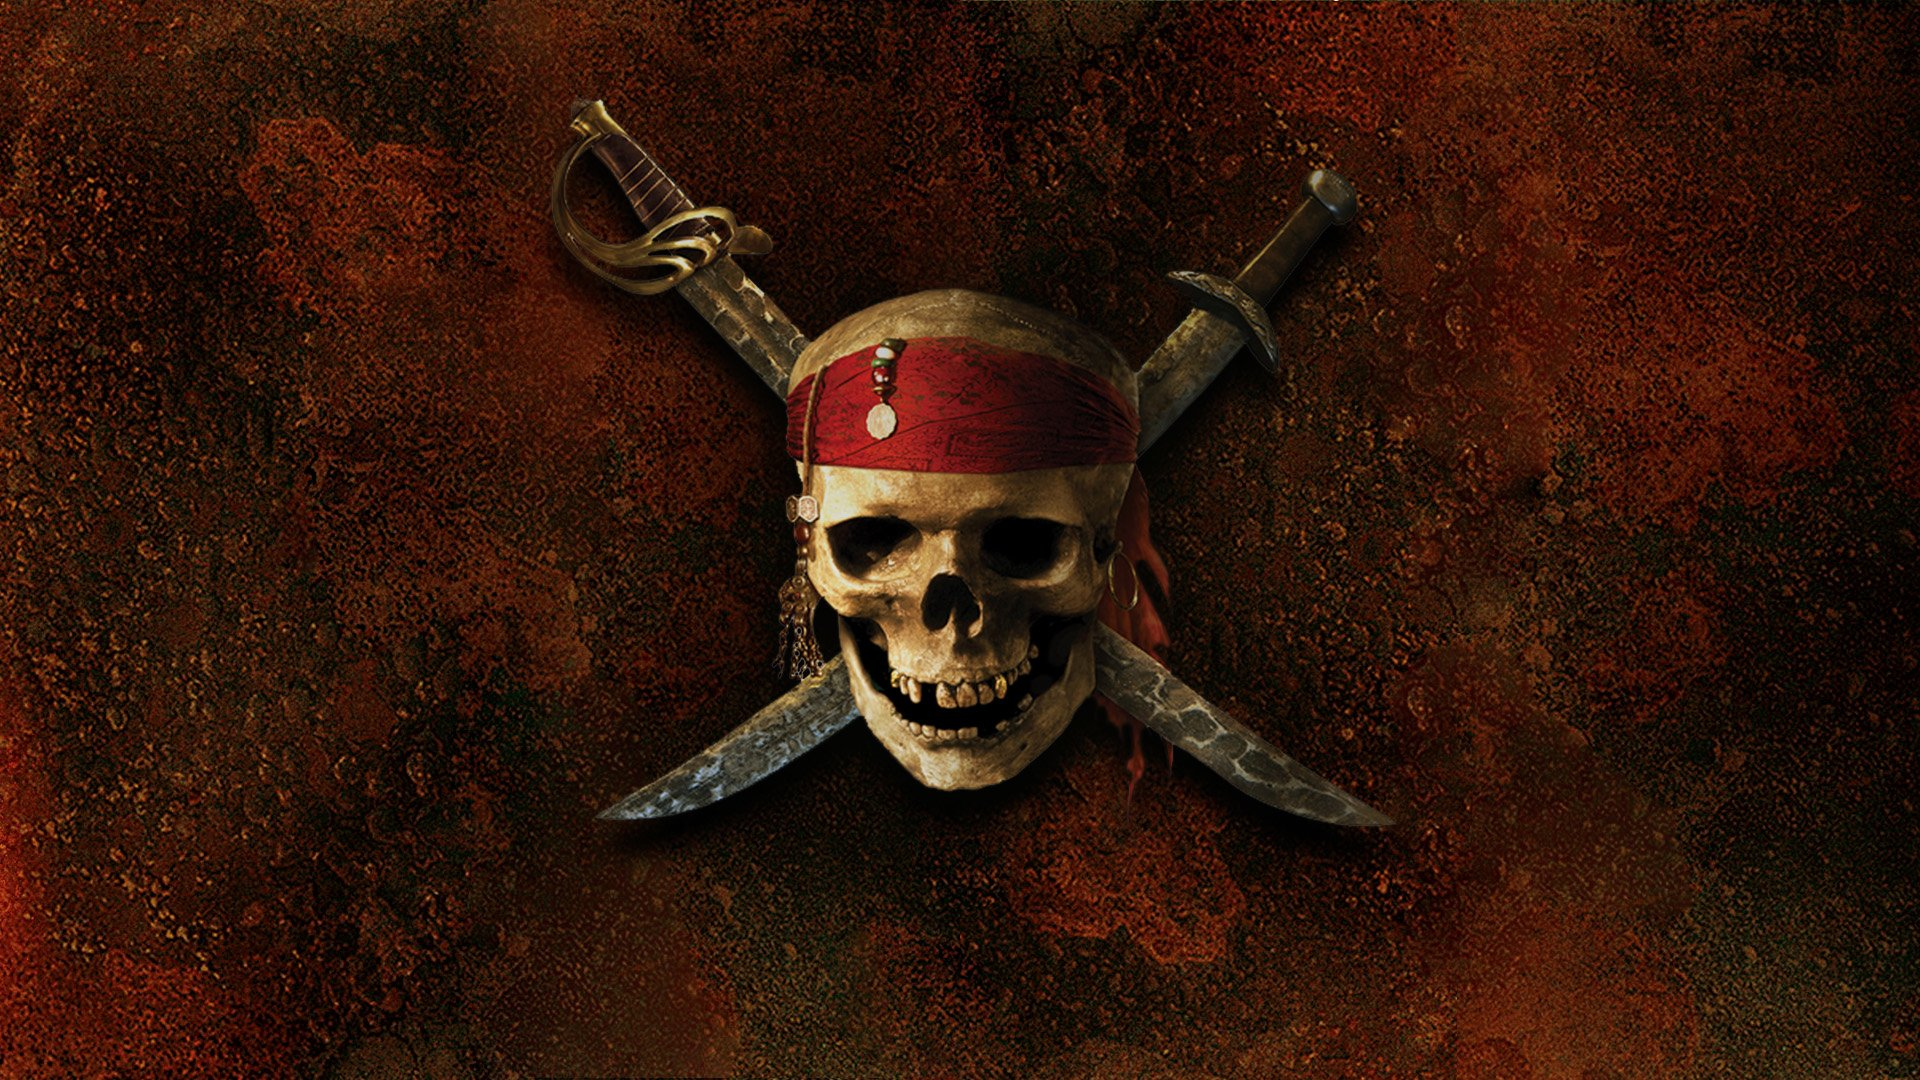 Wallpapers Id - - Pirates Of The Caribbean Skull Poster , HD Wallpaper & Backgrounds